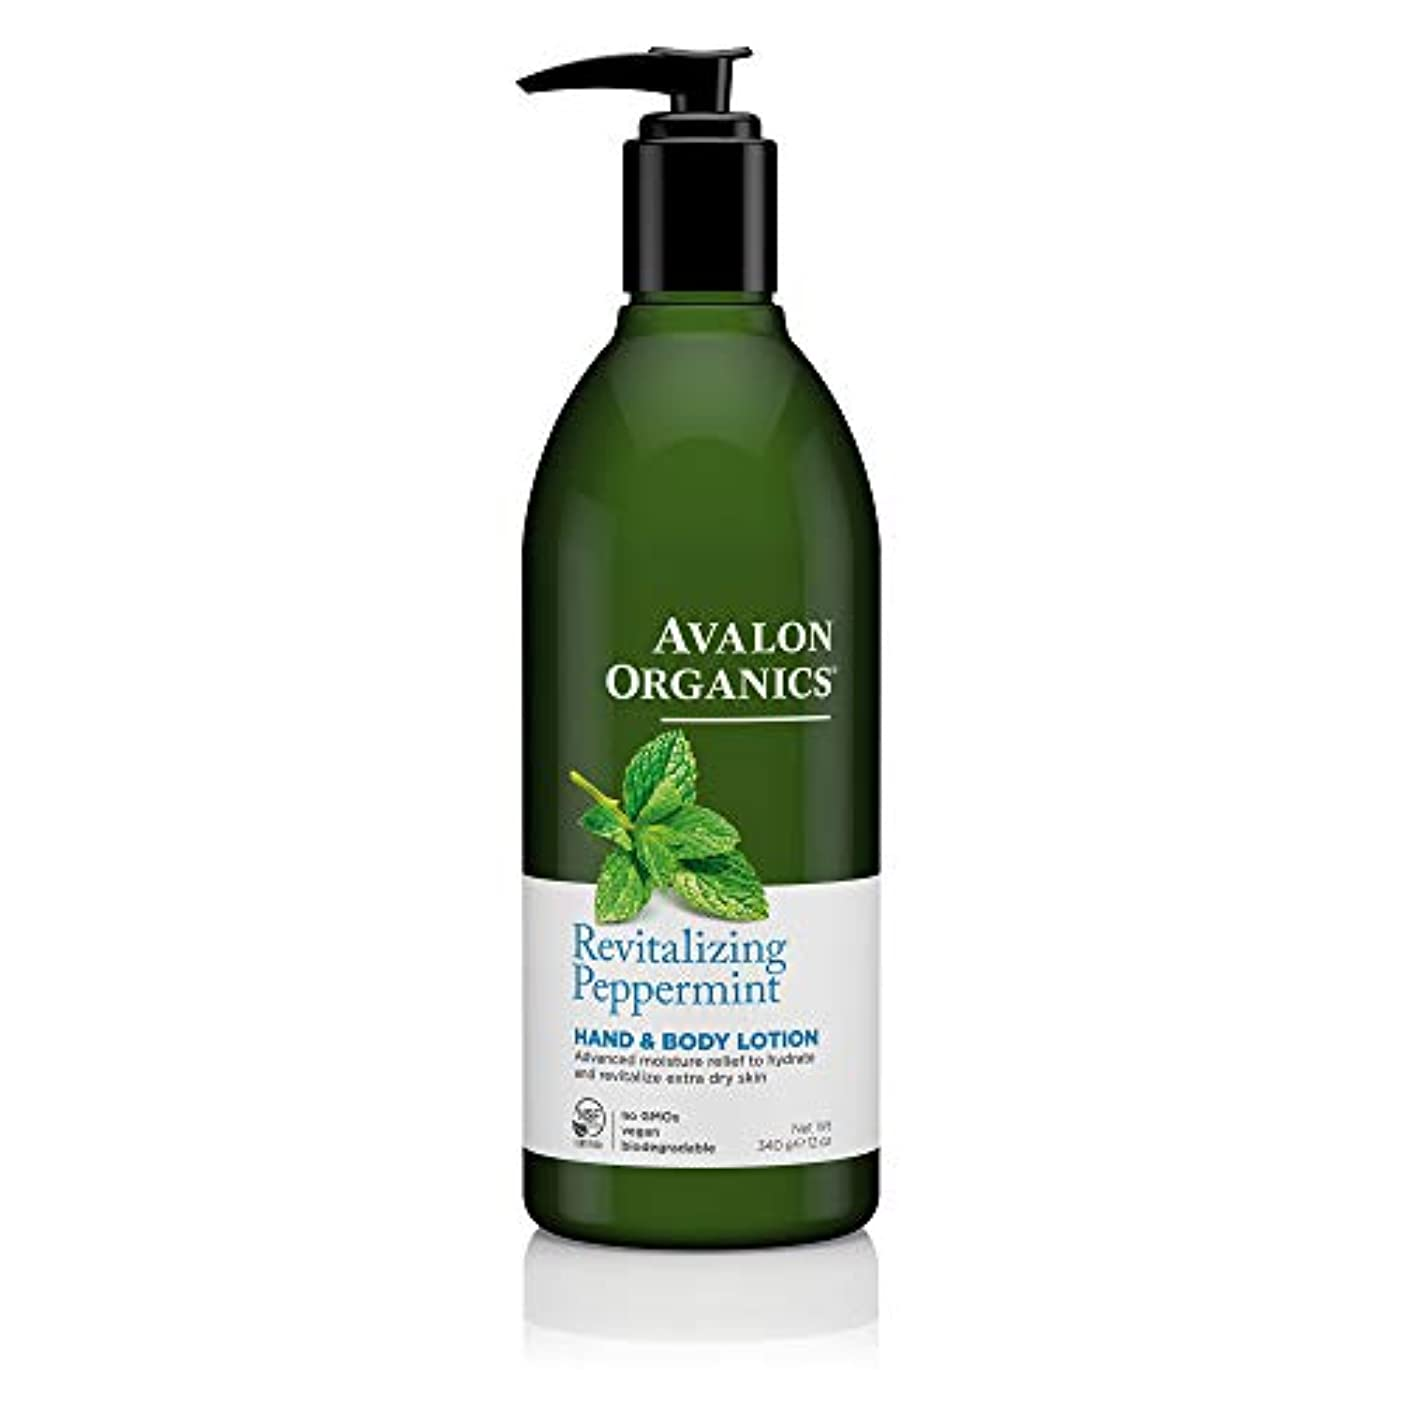 不純エイリアスに対処するAvalon Organics Peppermint Hand And Body Lotion, 12-Ounce Bottle (Pack of 2) by Avalon [並行輸入品]